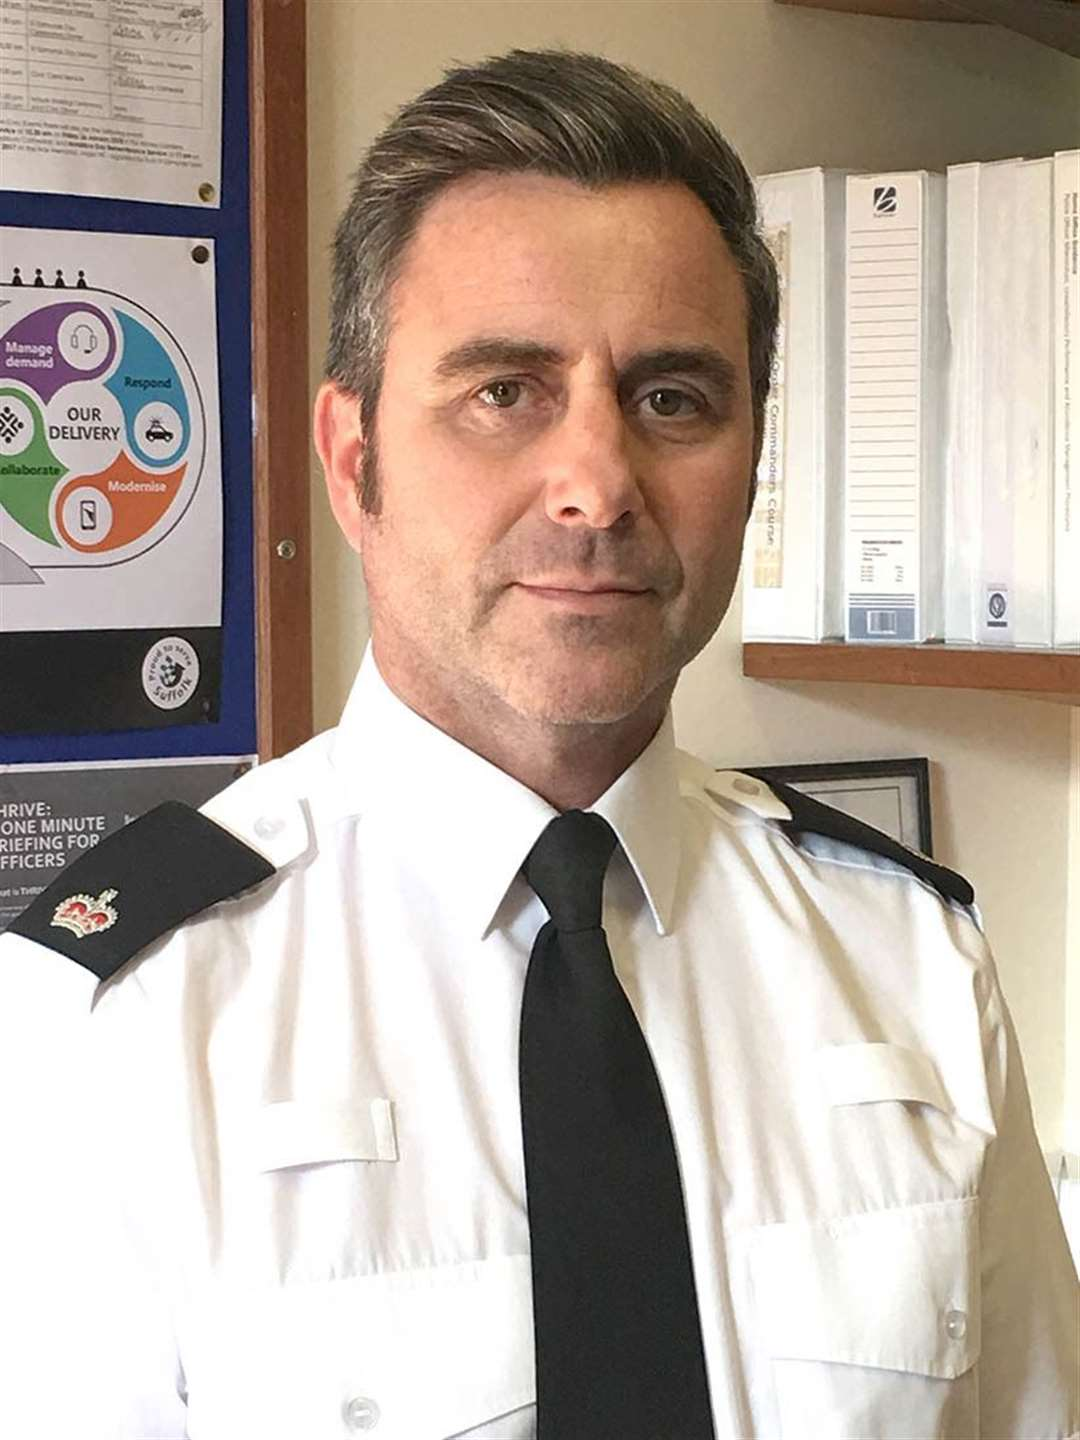 Temporary Chief Superintendent Kim Warner has urged people to 'show restraint, discipline and common sense' over the next month